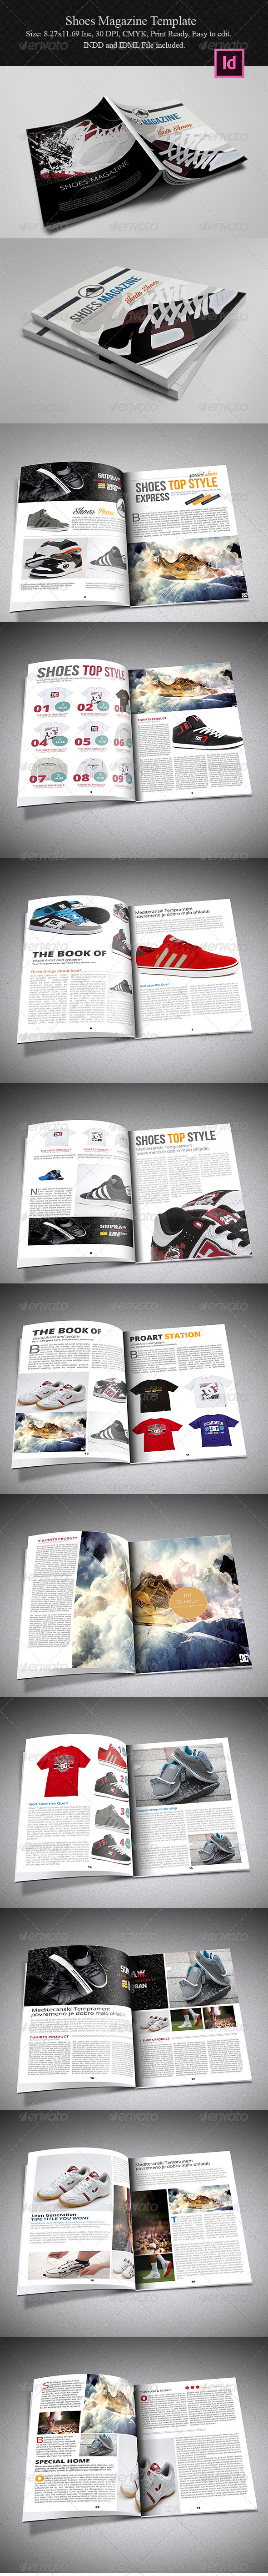 GraphicRiver Shoes Magazine Template 5599876